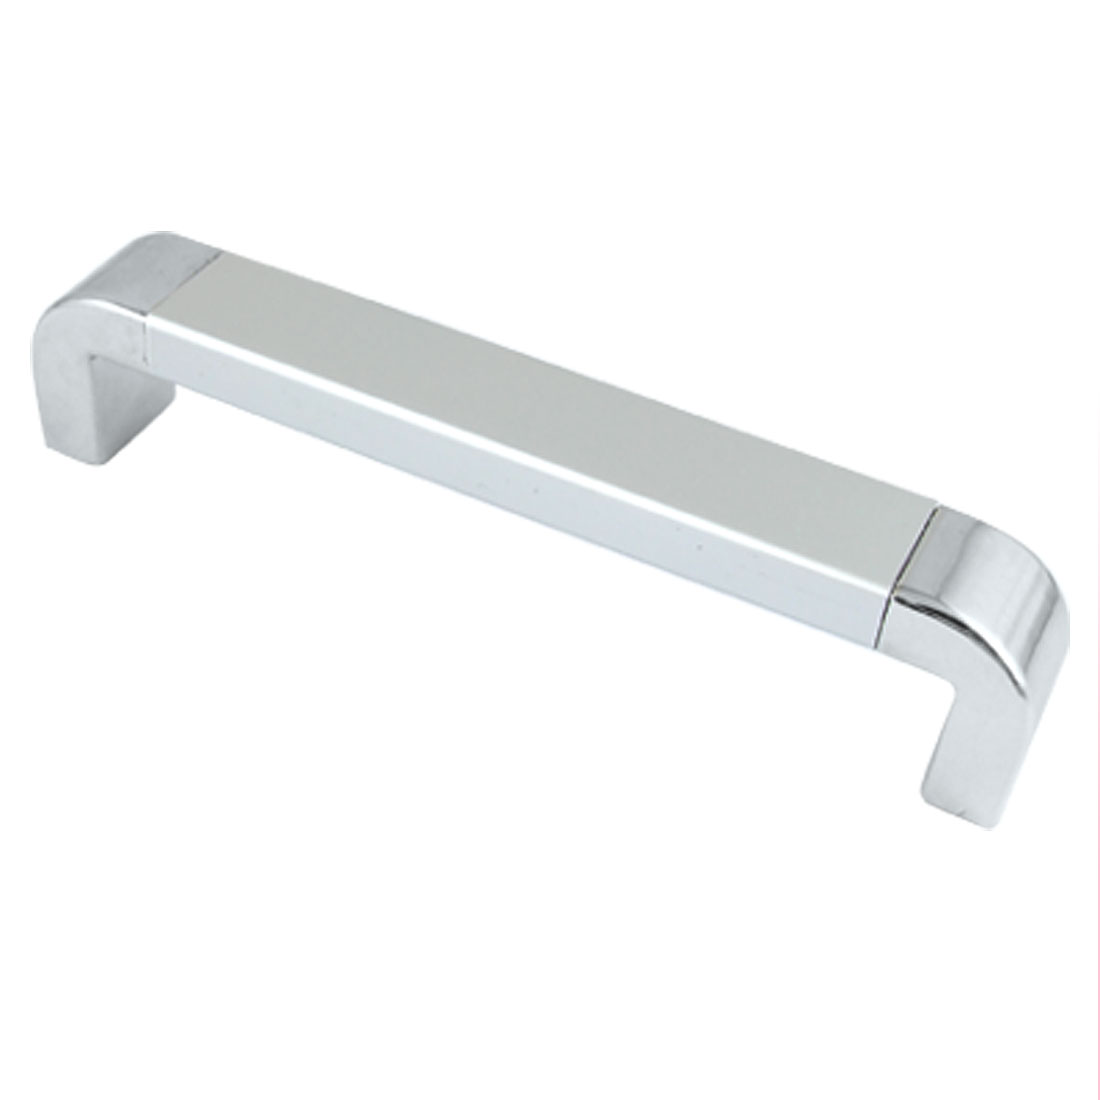 Hardware Cupboard Cabinets Door Knob Pull Handle Satin Nickel